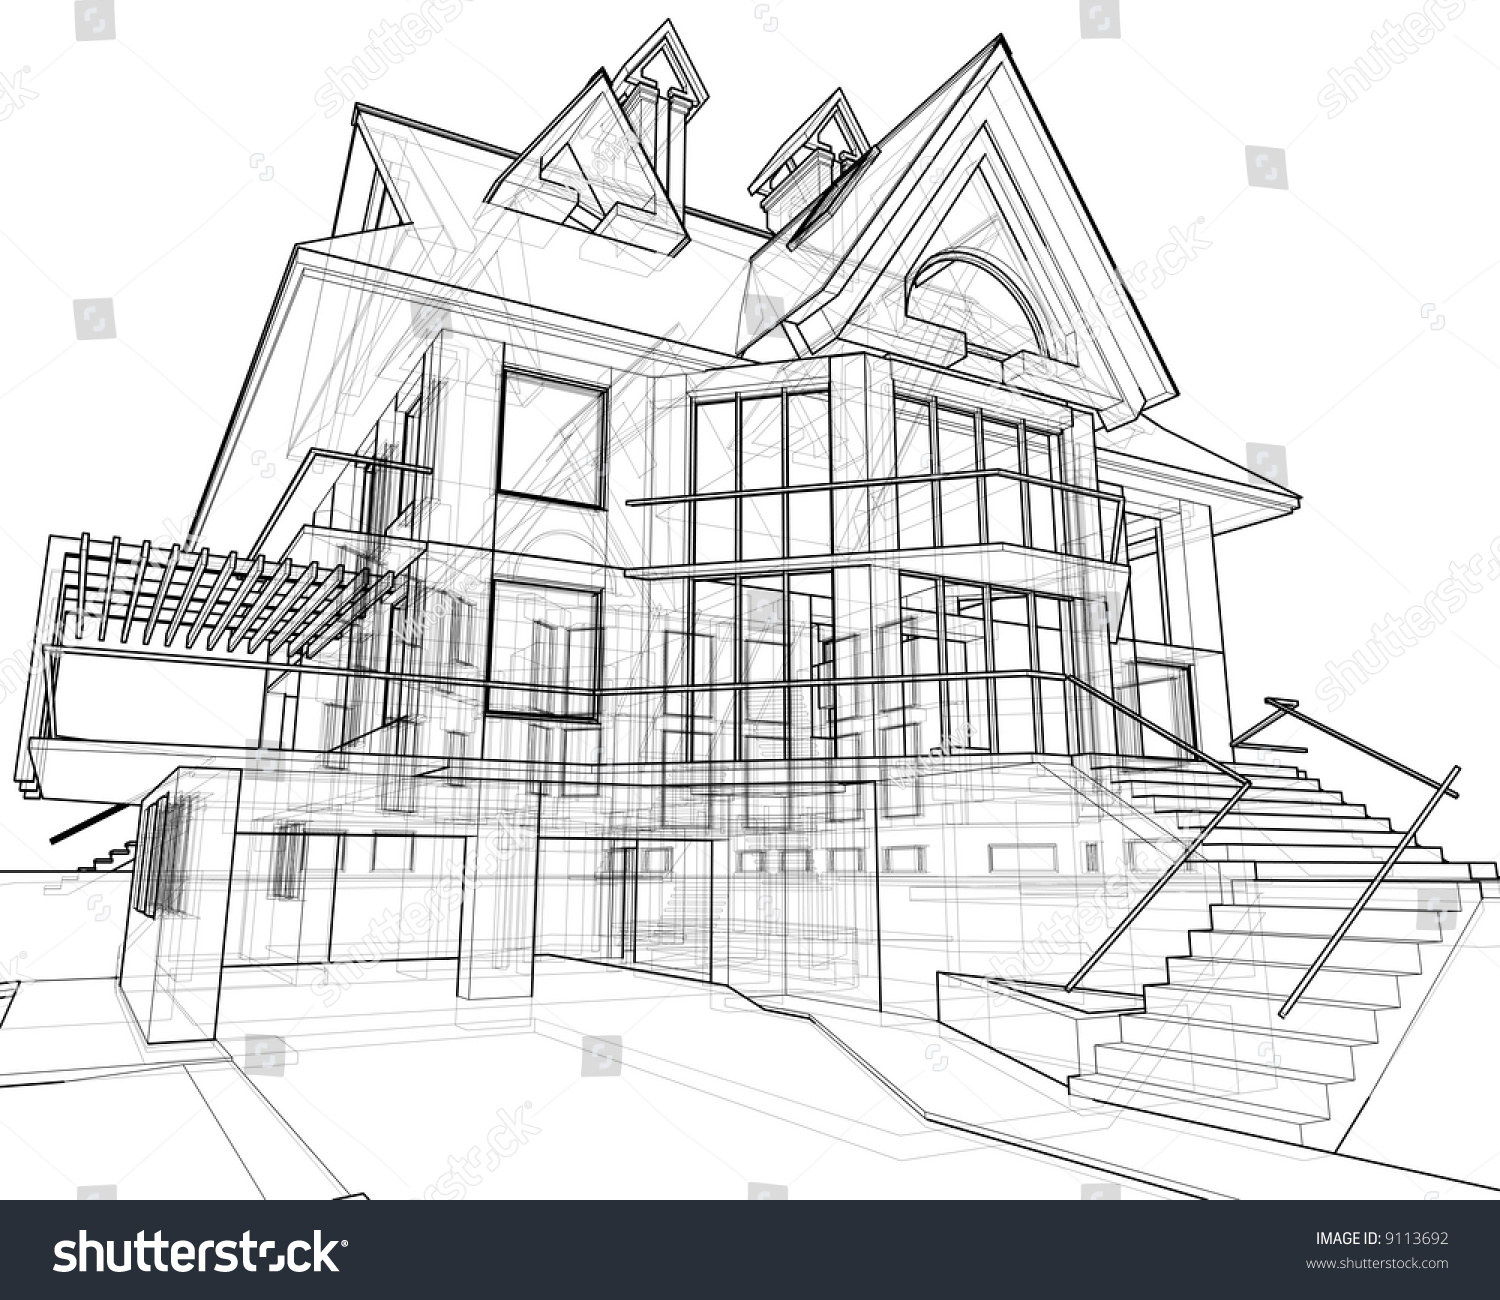 House 3d Technical Draw Stock Photo 9113692 Shutterstock